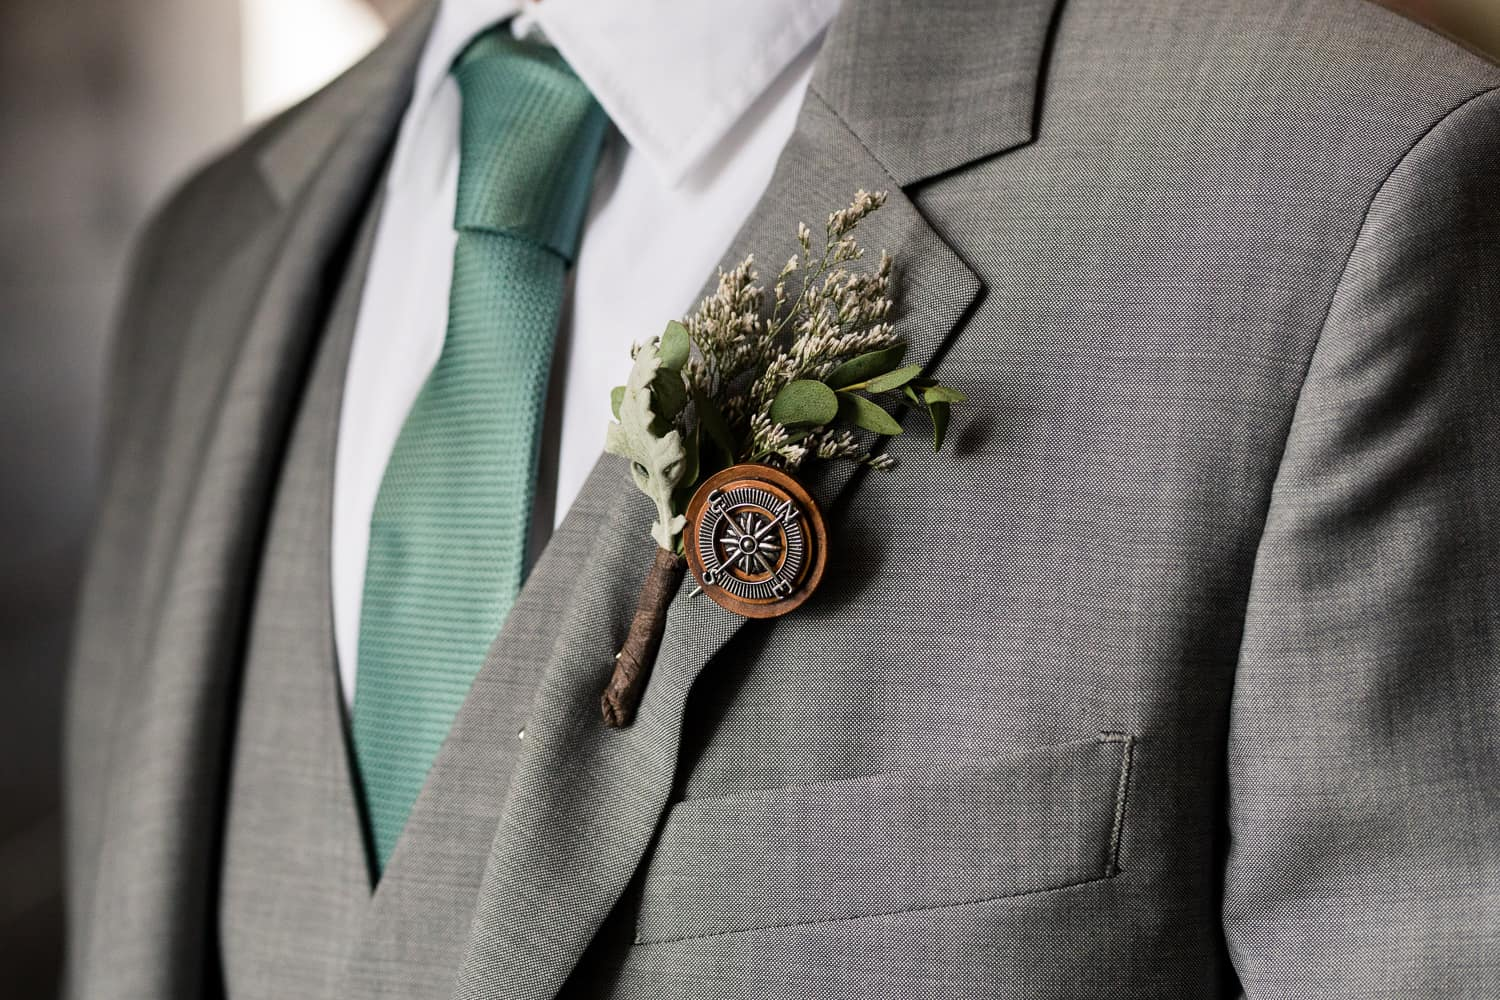 boutonniere with a compass pin.